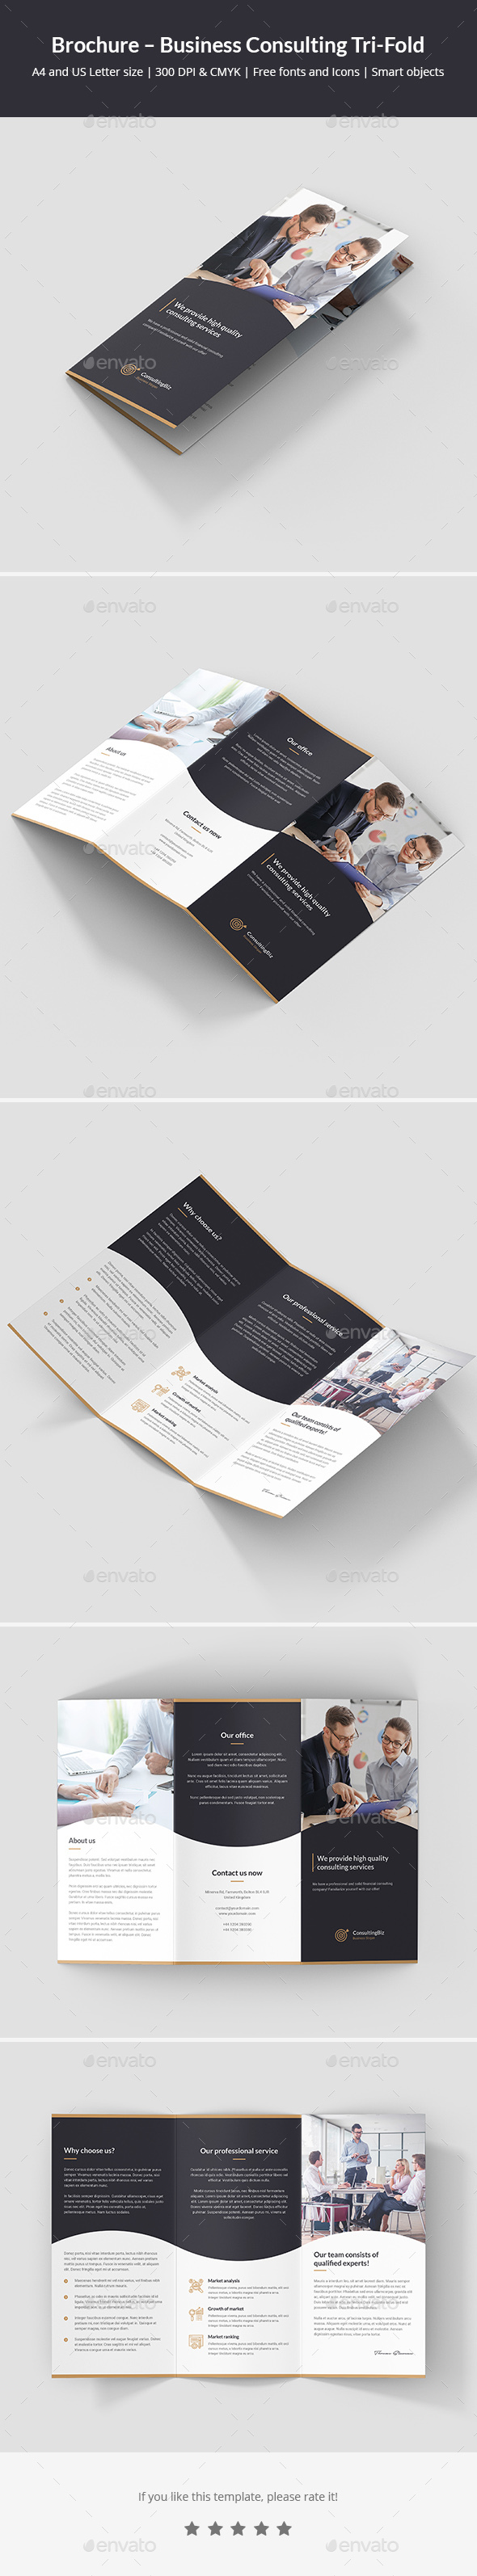 Brochure – Business Consulting Tri-Fold - Corporate Brochures